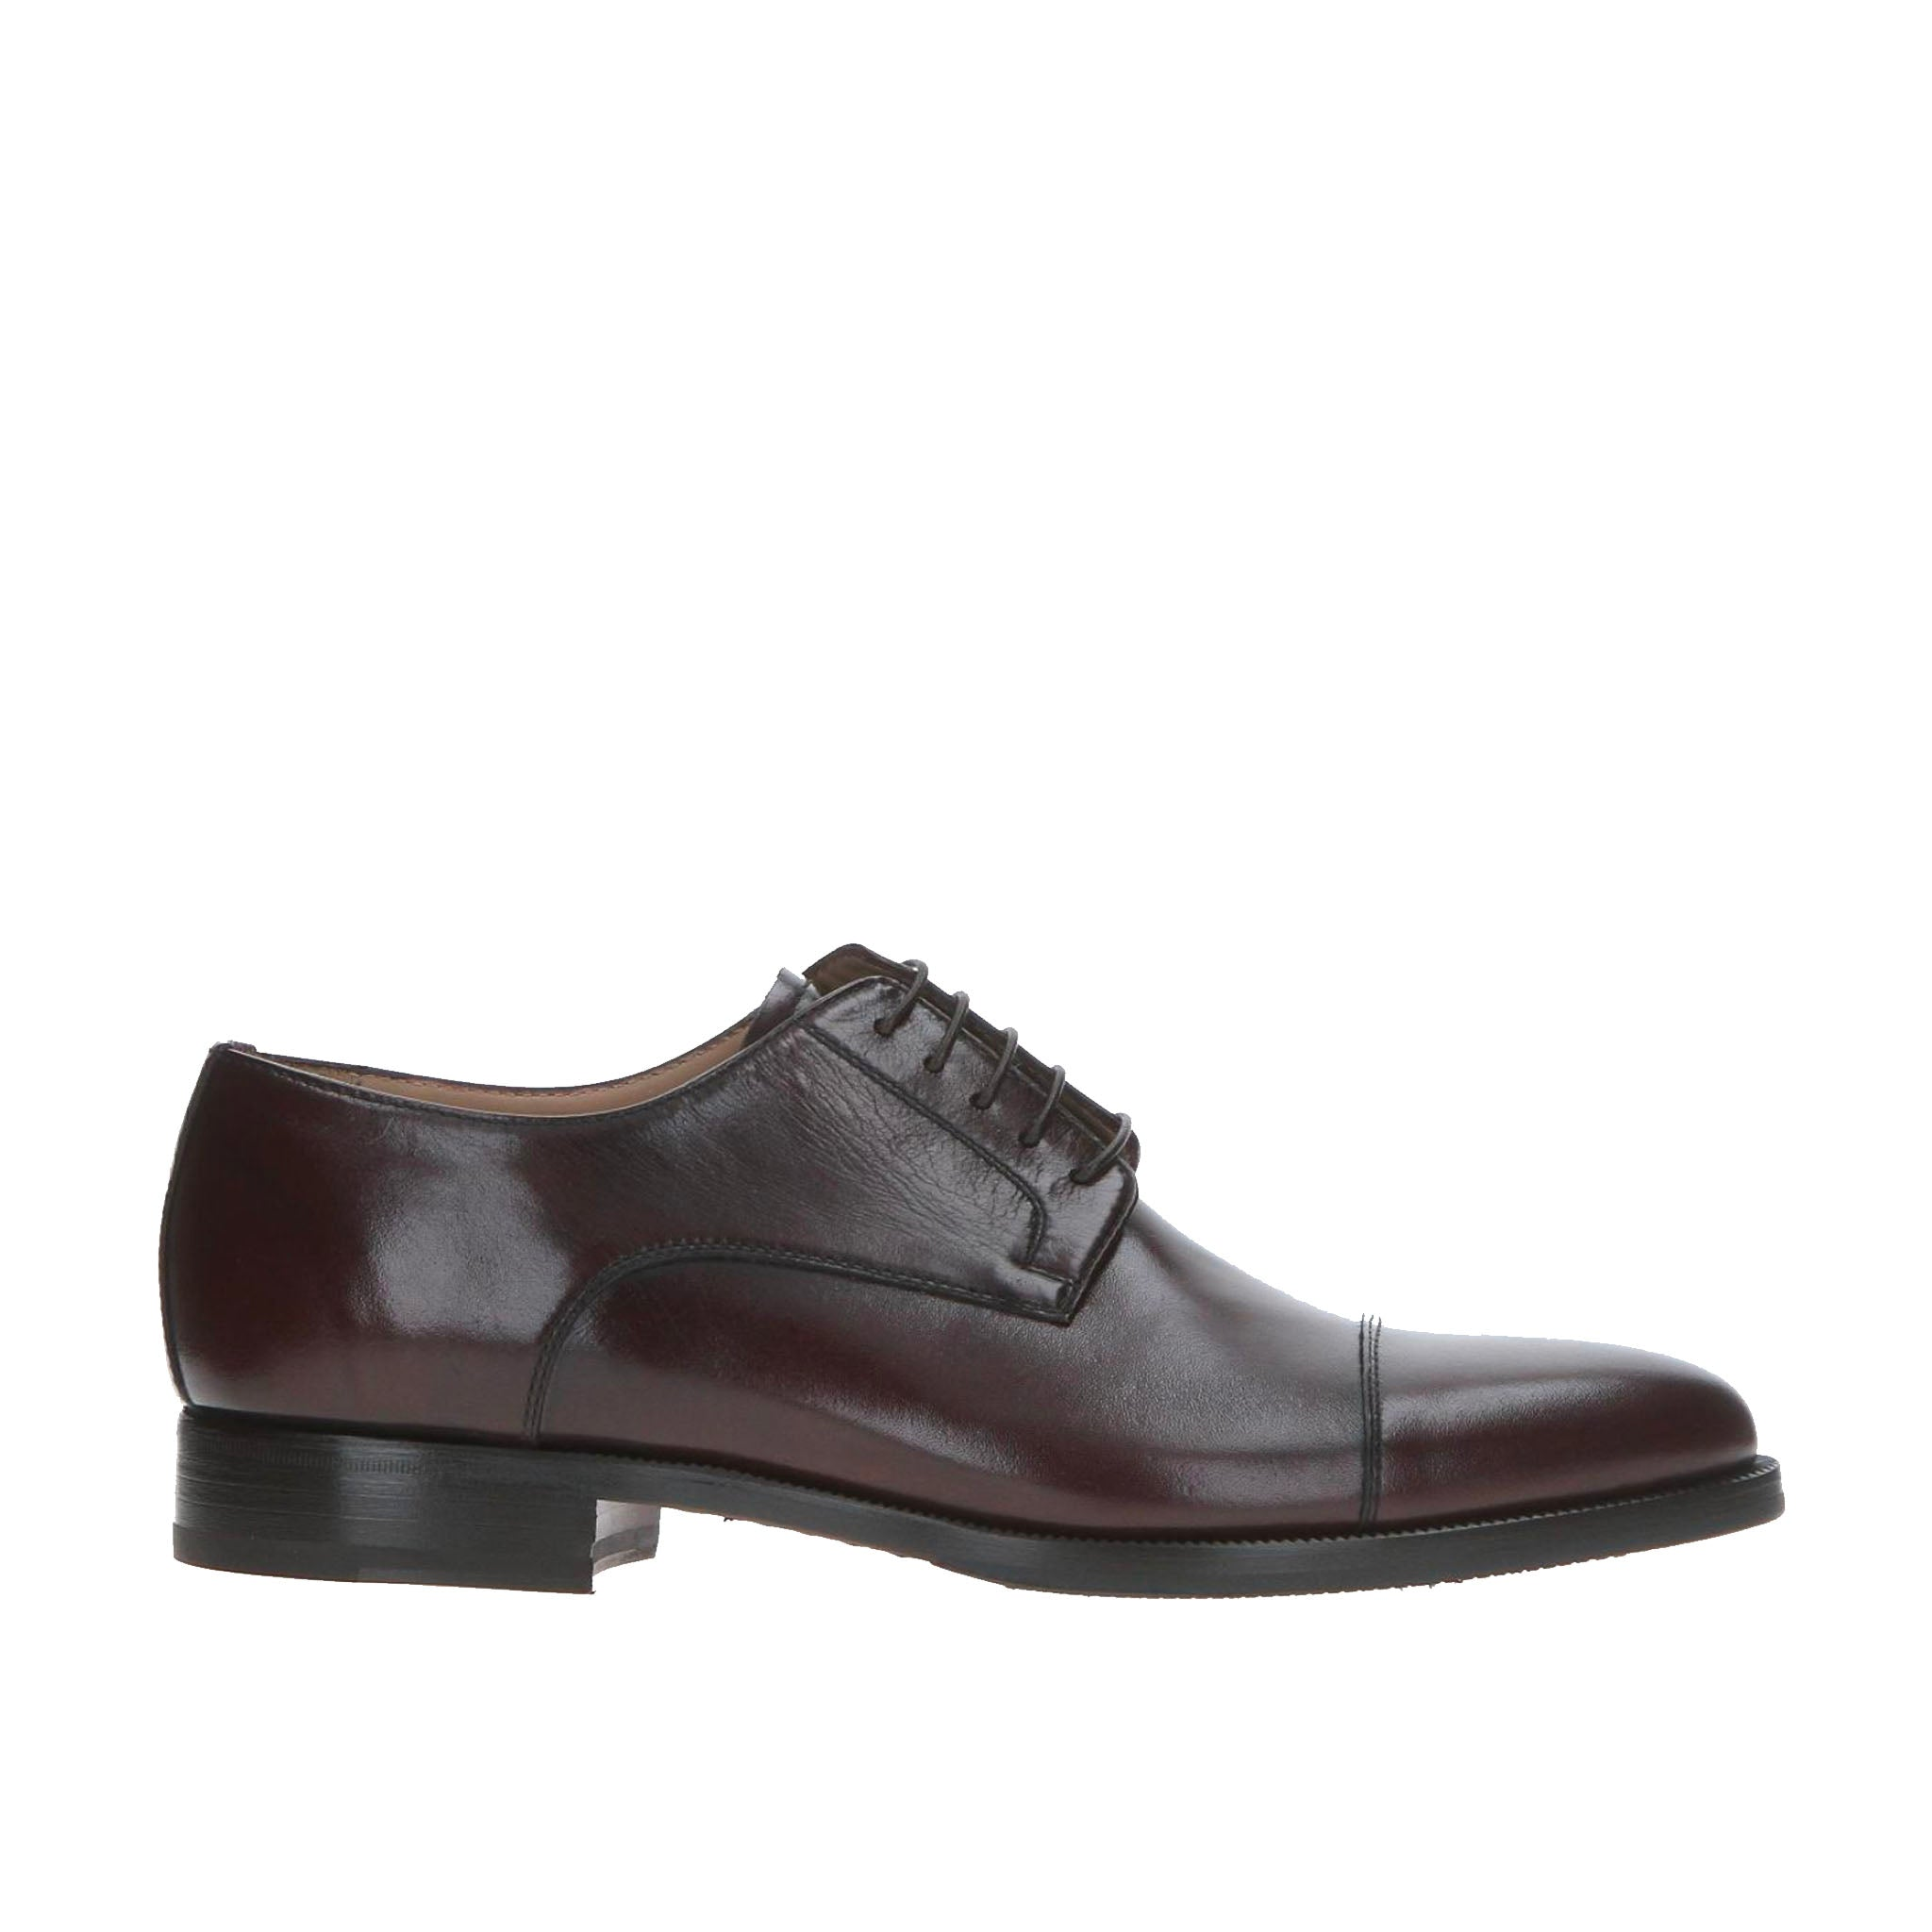 Fabi Formal Leather Shoes